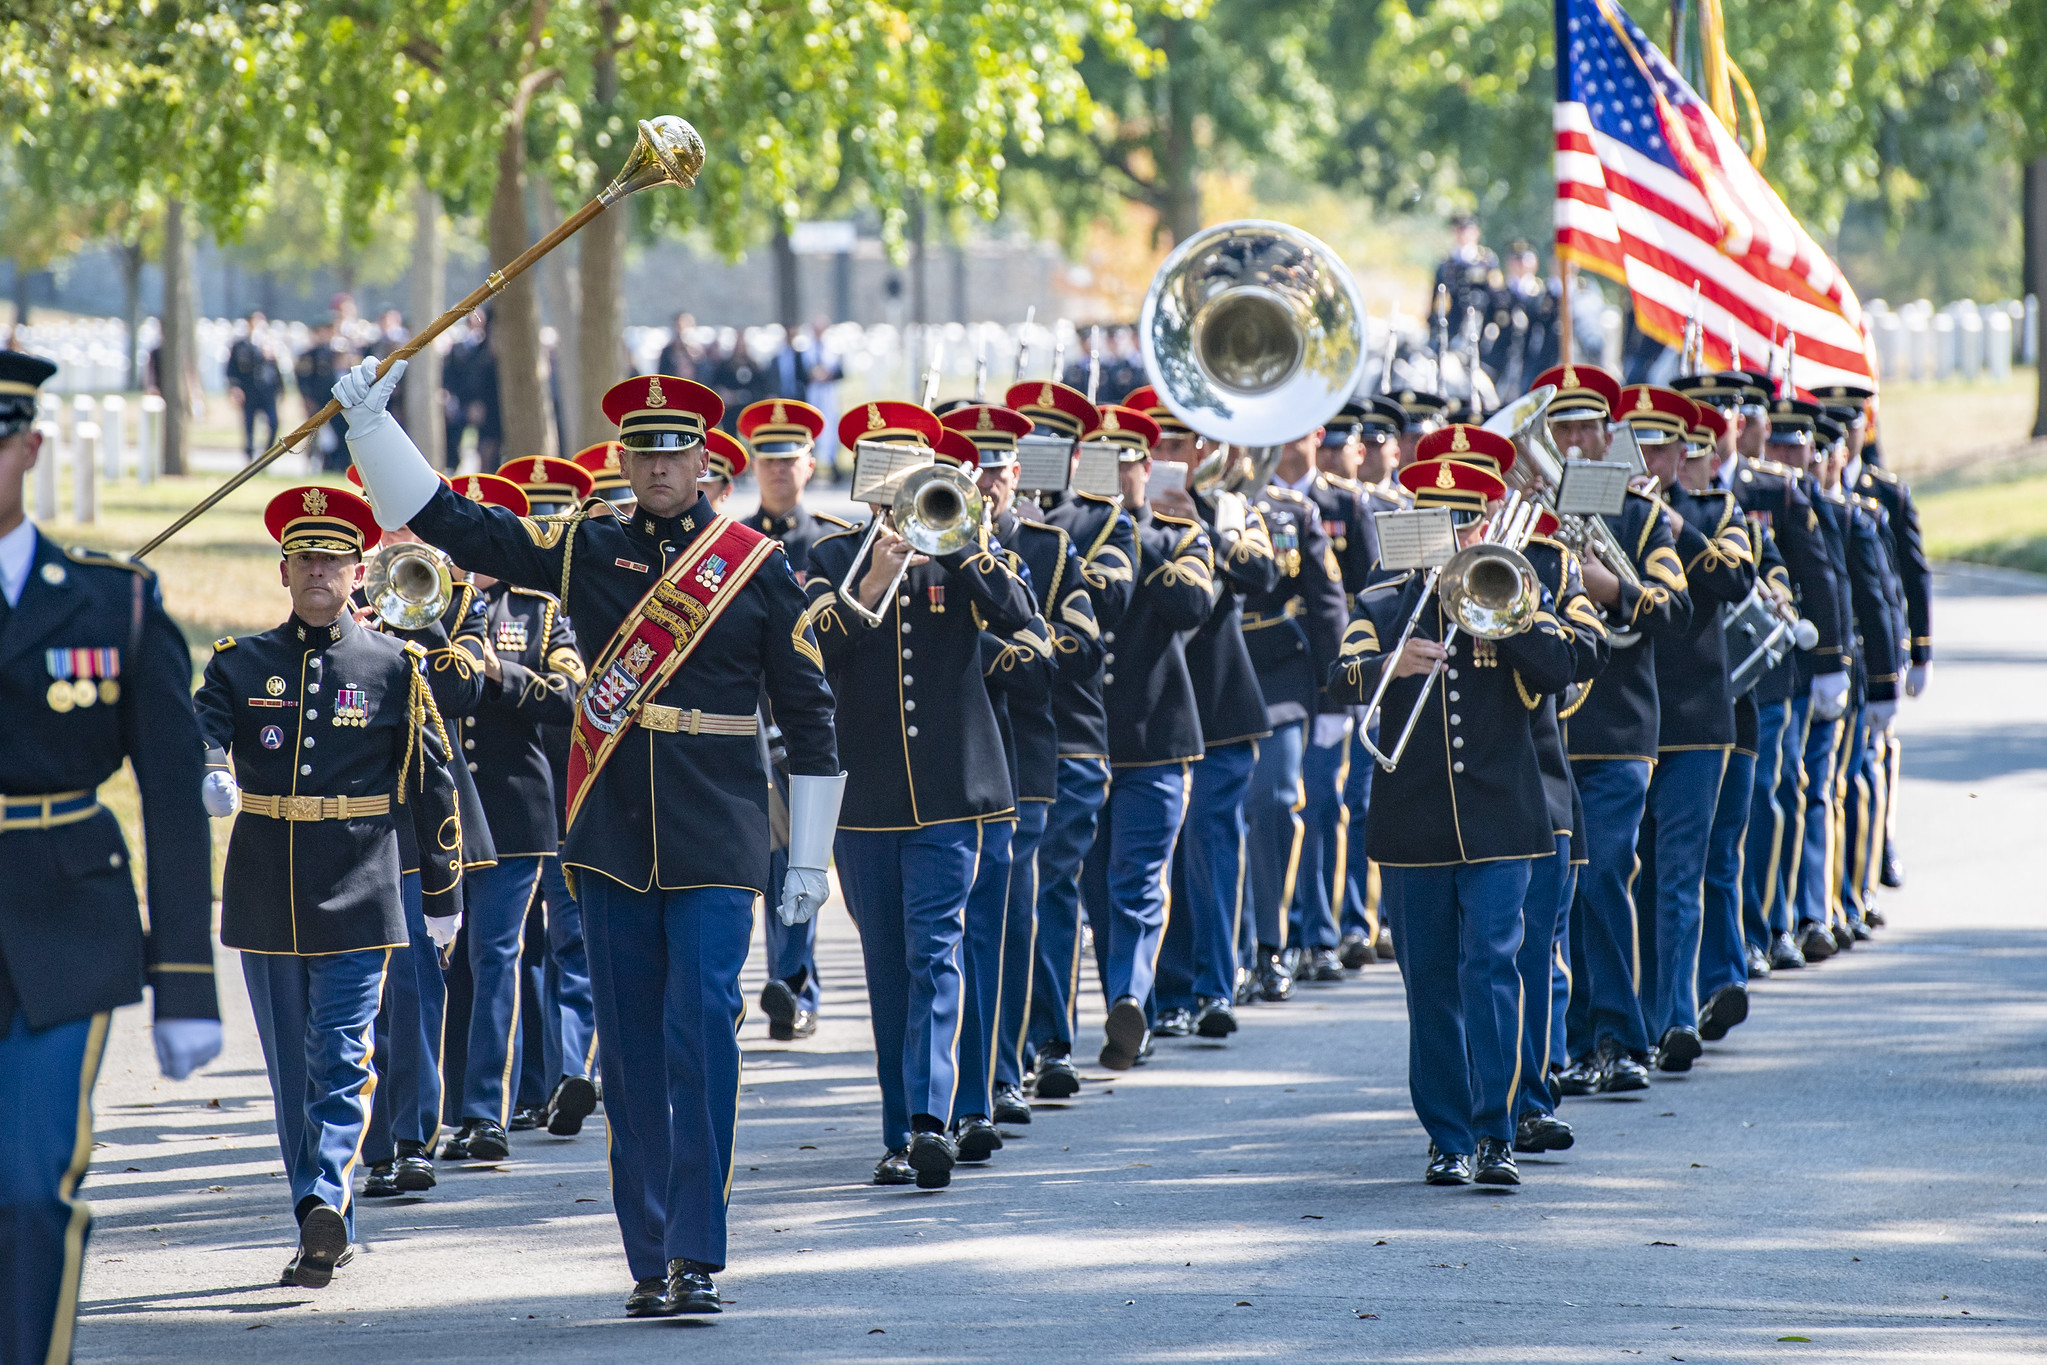 The U.S. Army Band marches in a full military honors funeral with funeral escort in Section 60 at Arlington National Cemetery, September 11, 2019